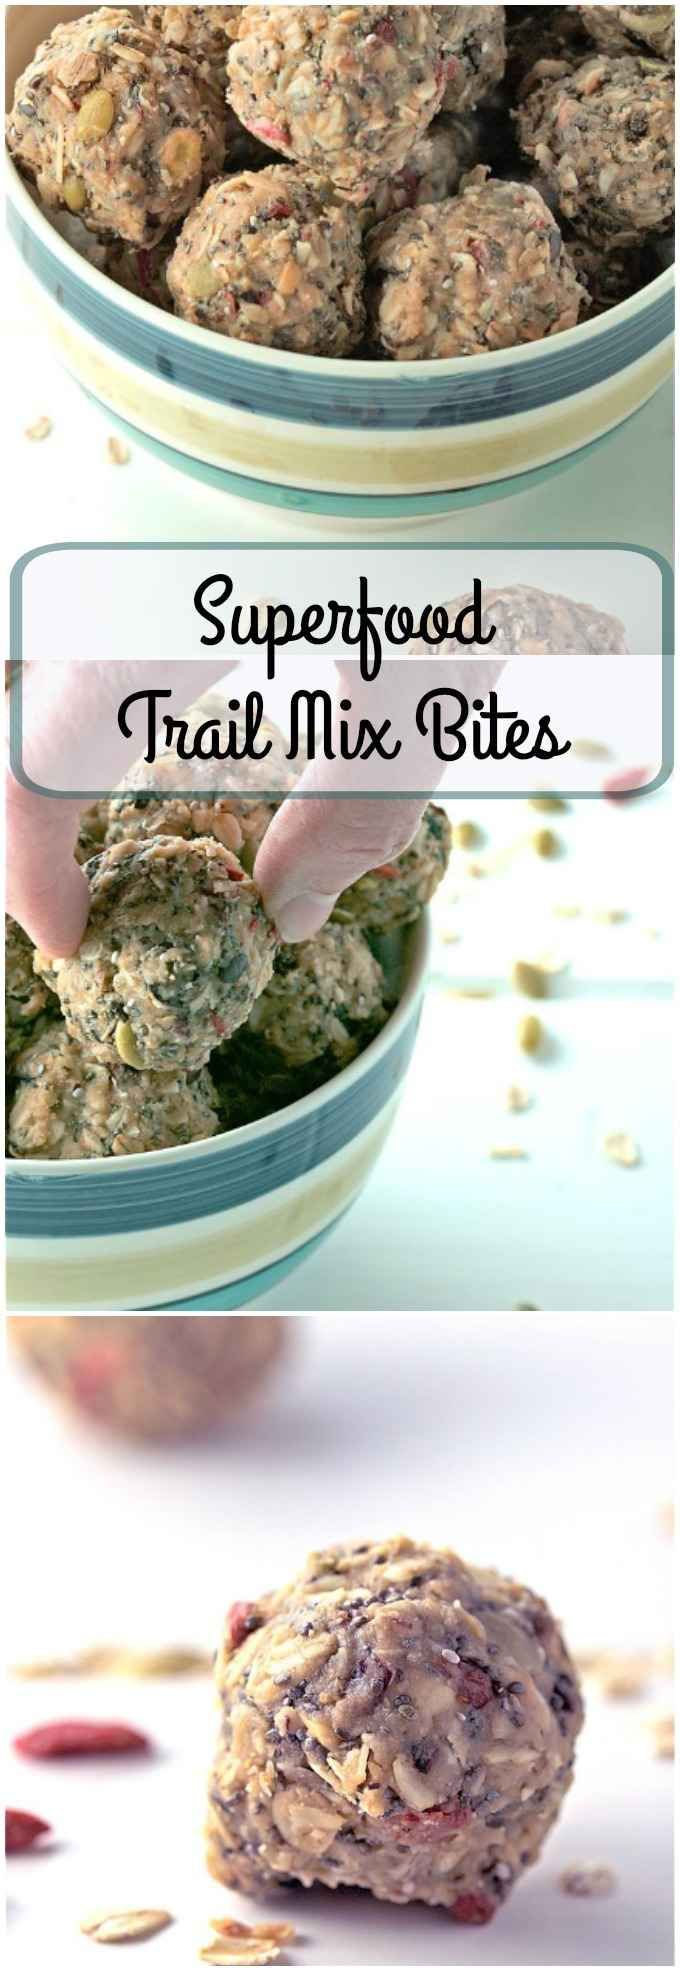 210 best healthy recipes images on pinterest healthy eating habits superfood trail mix bites are a no bake easy to make nutritious snack making healthy food at home is easy forumfinder Choice Image